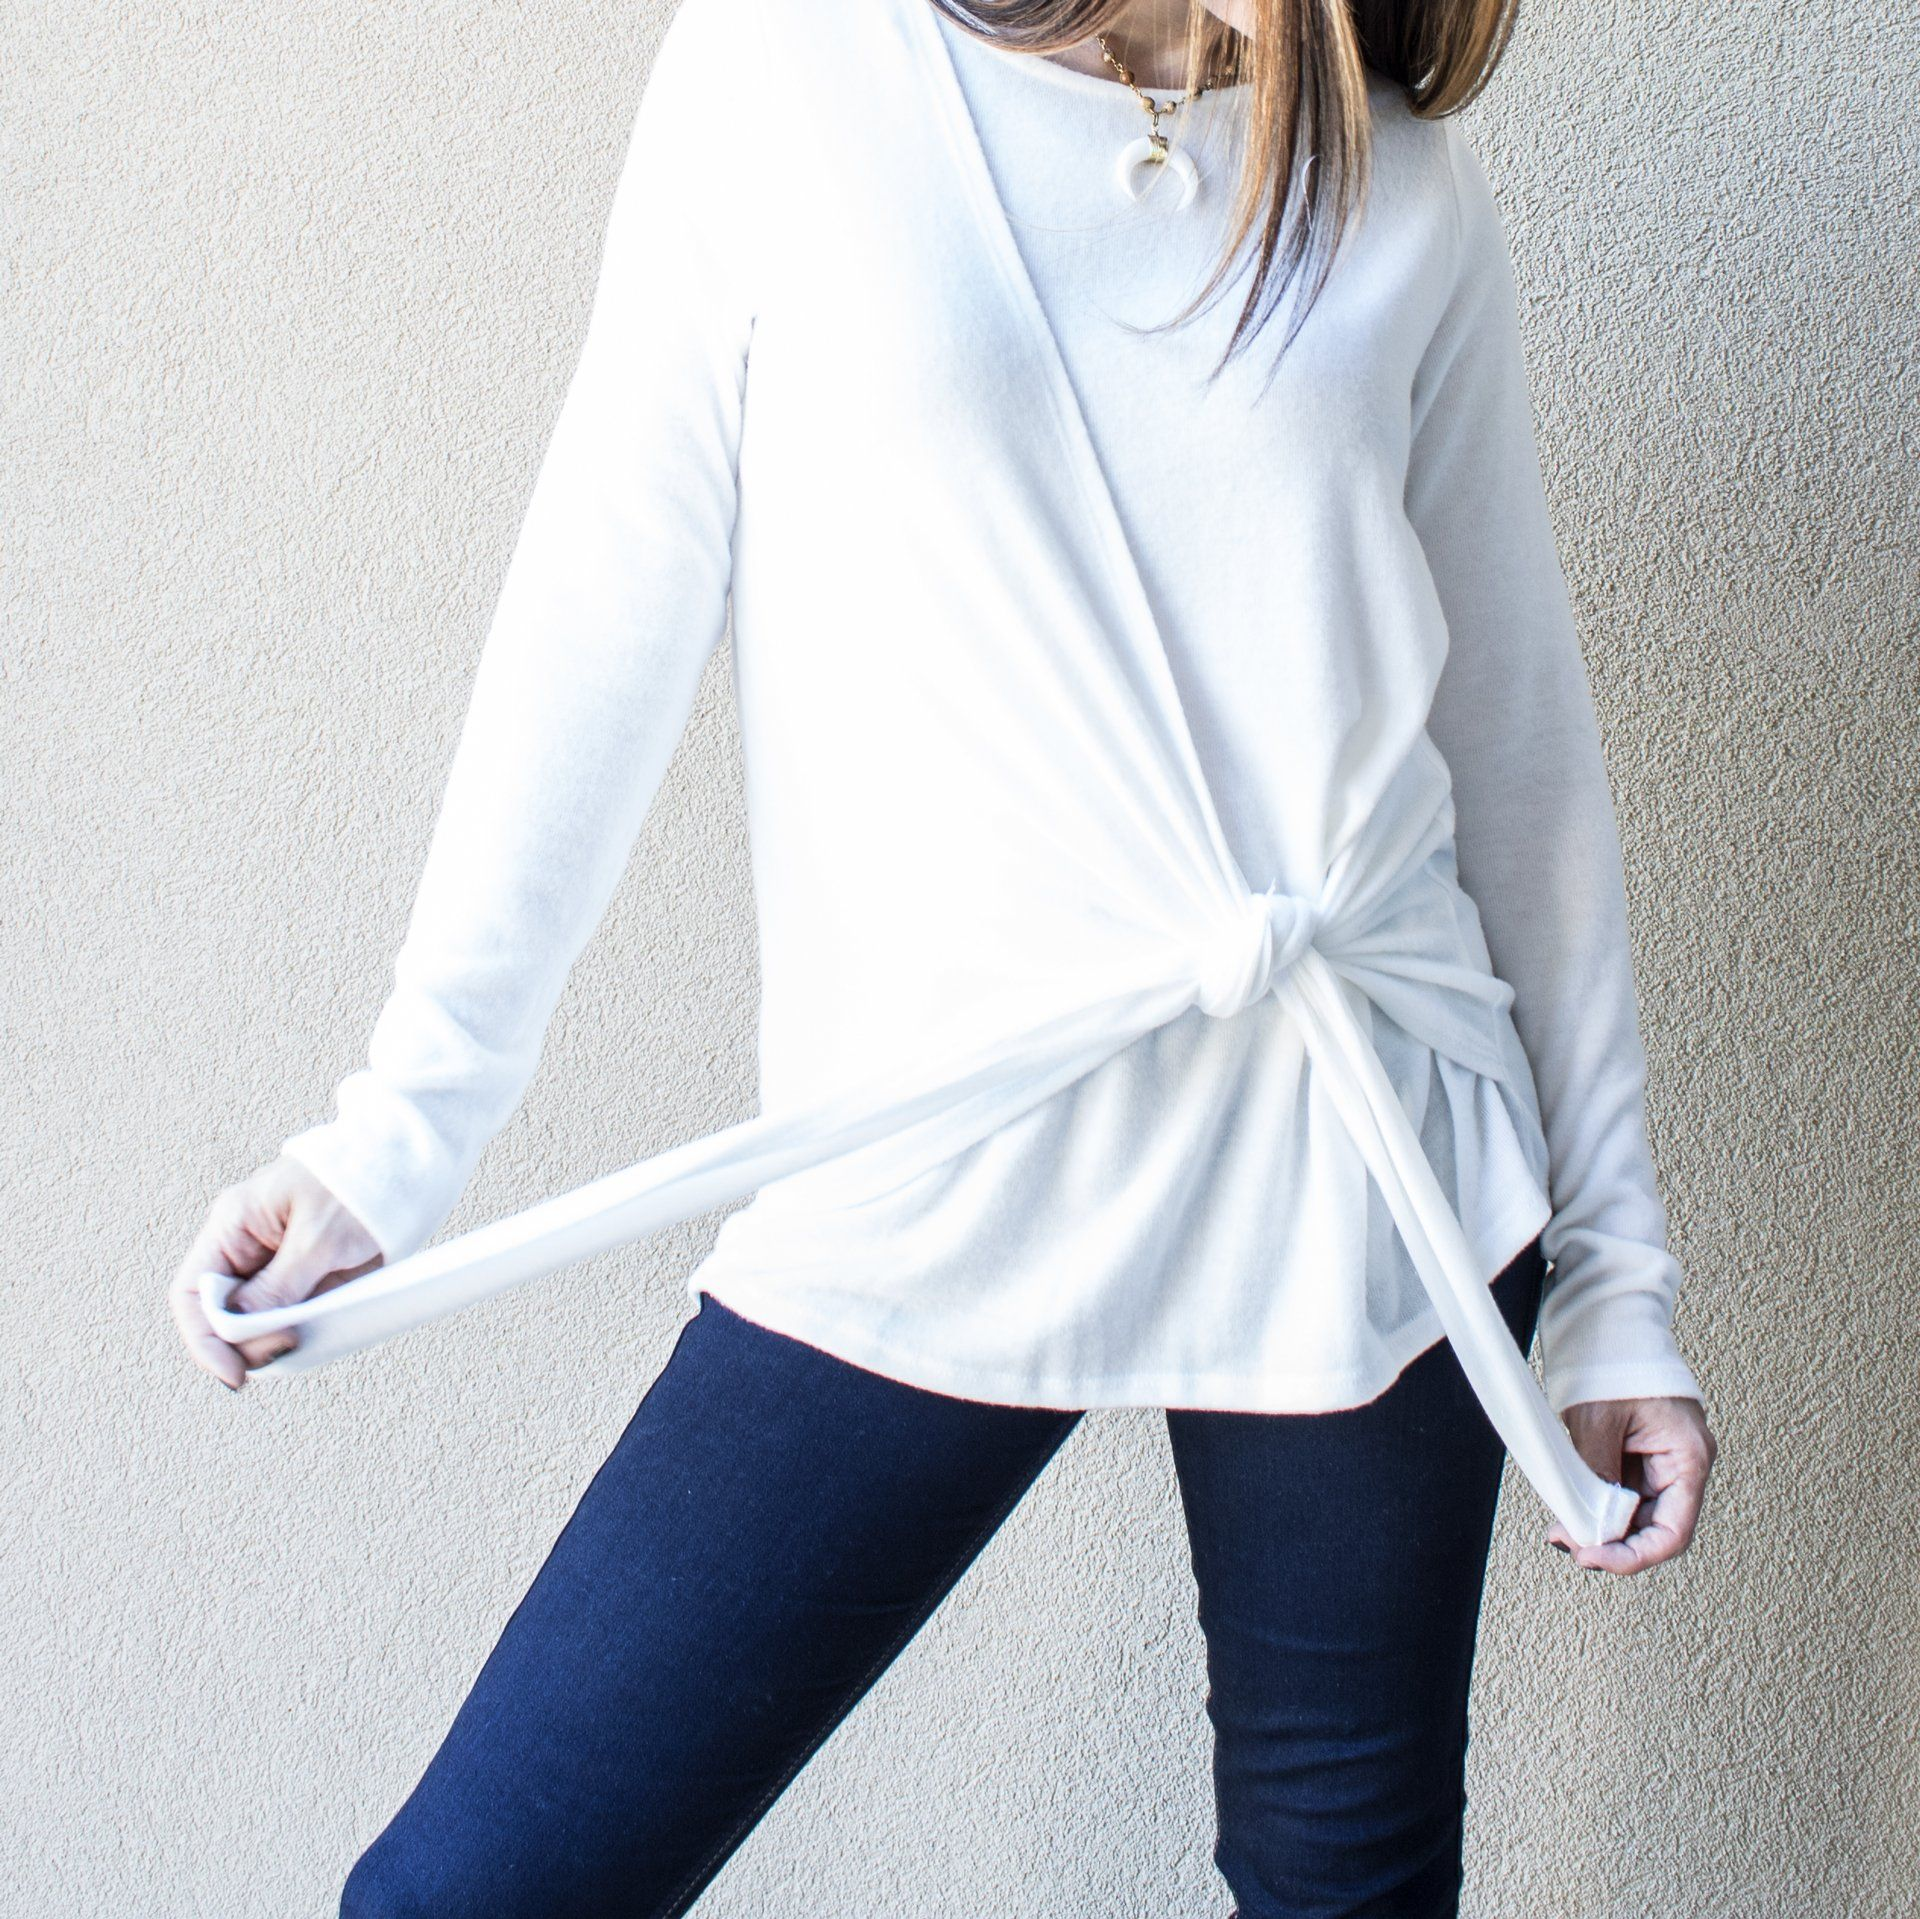 Brushed Cashmere Like, Long Sleeve Tie Sweater in White - Arlo and Arrows